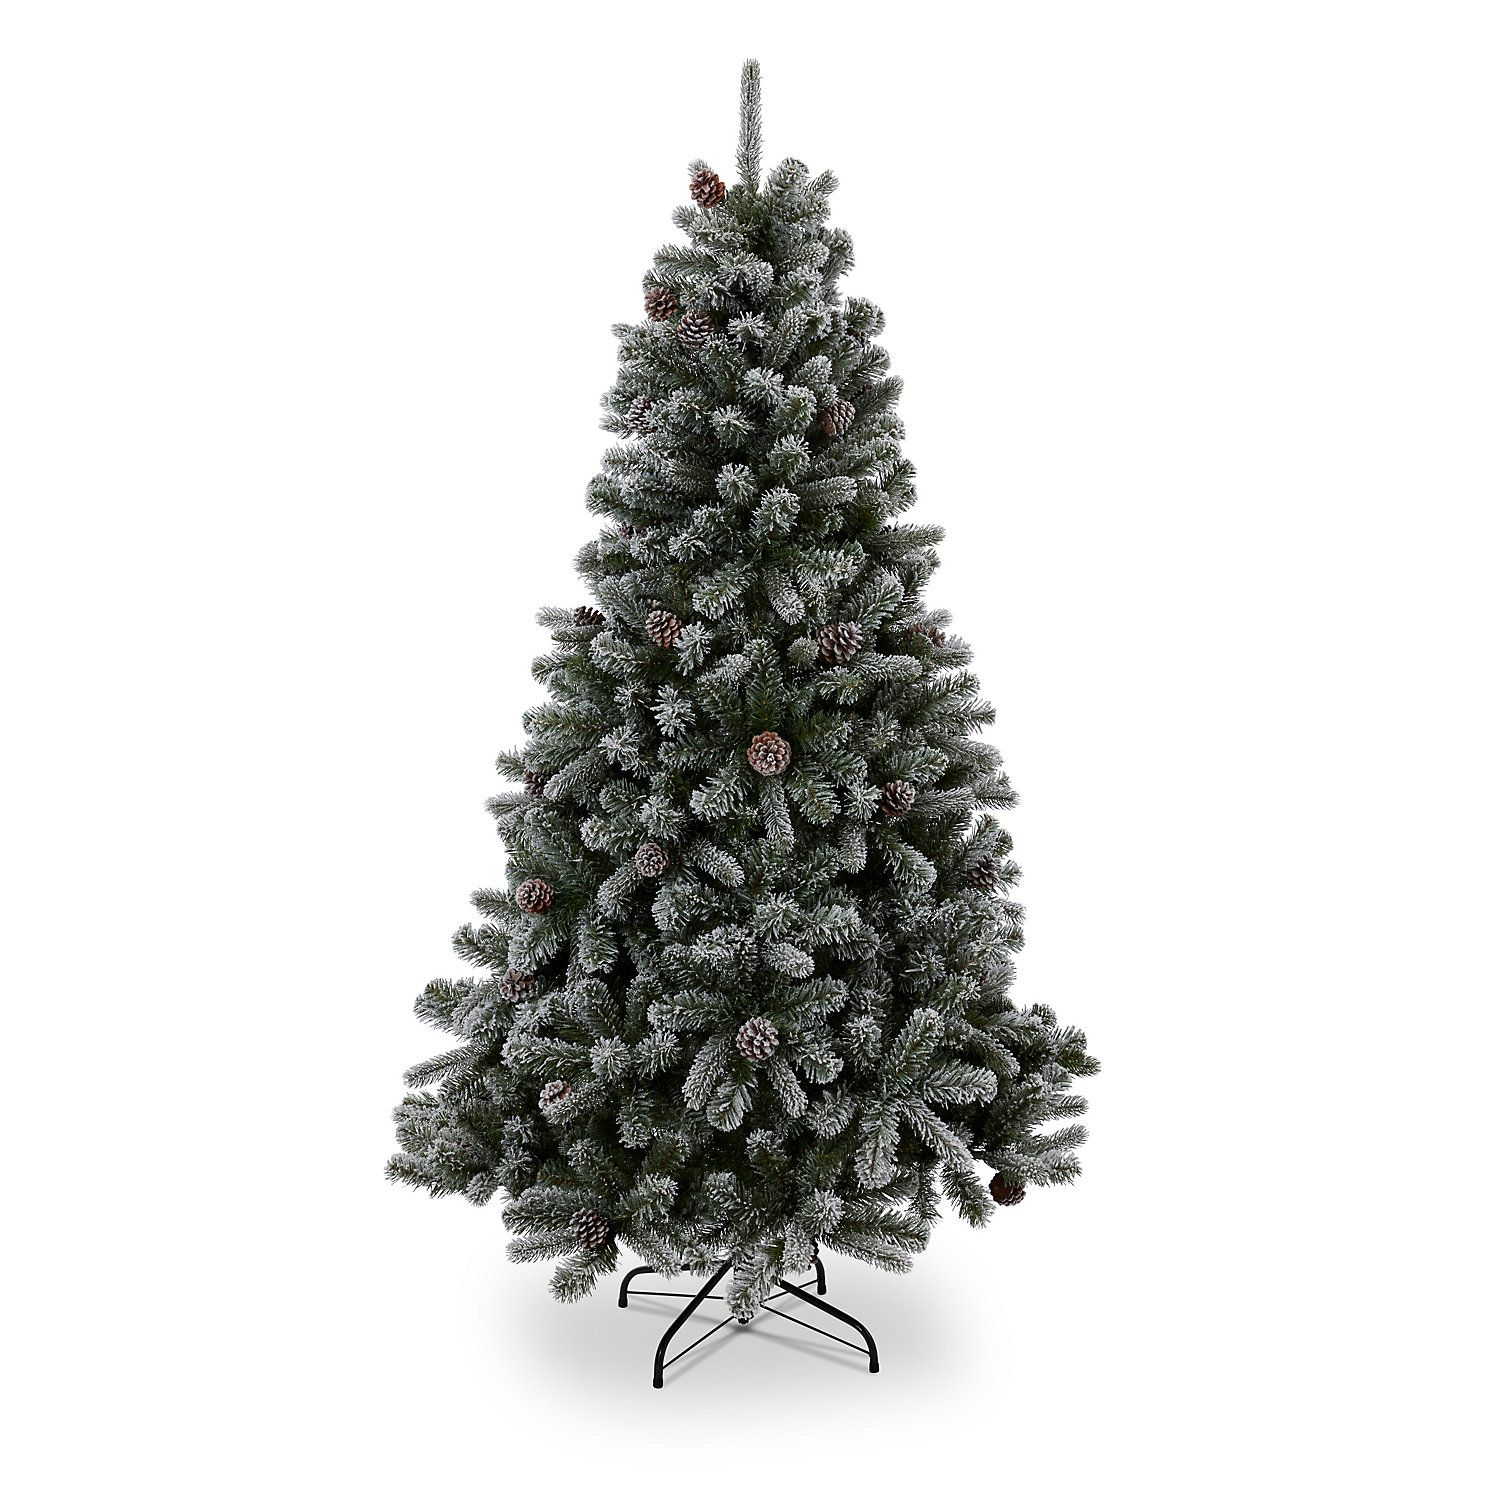 The Christmas Trees You Dont Have To Decorate Pre Decorated